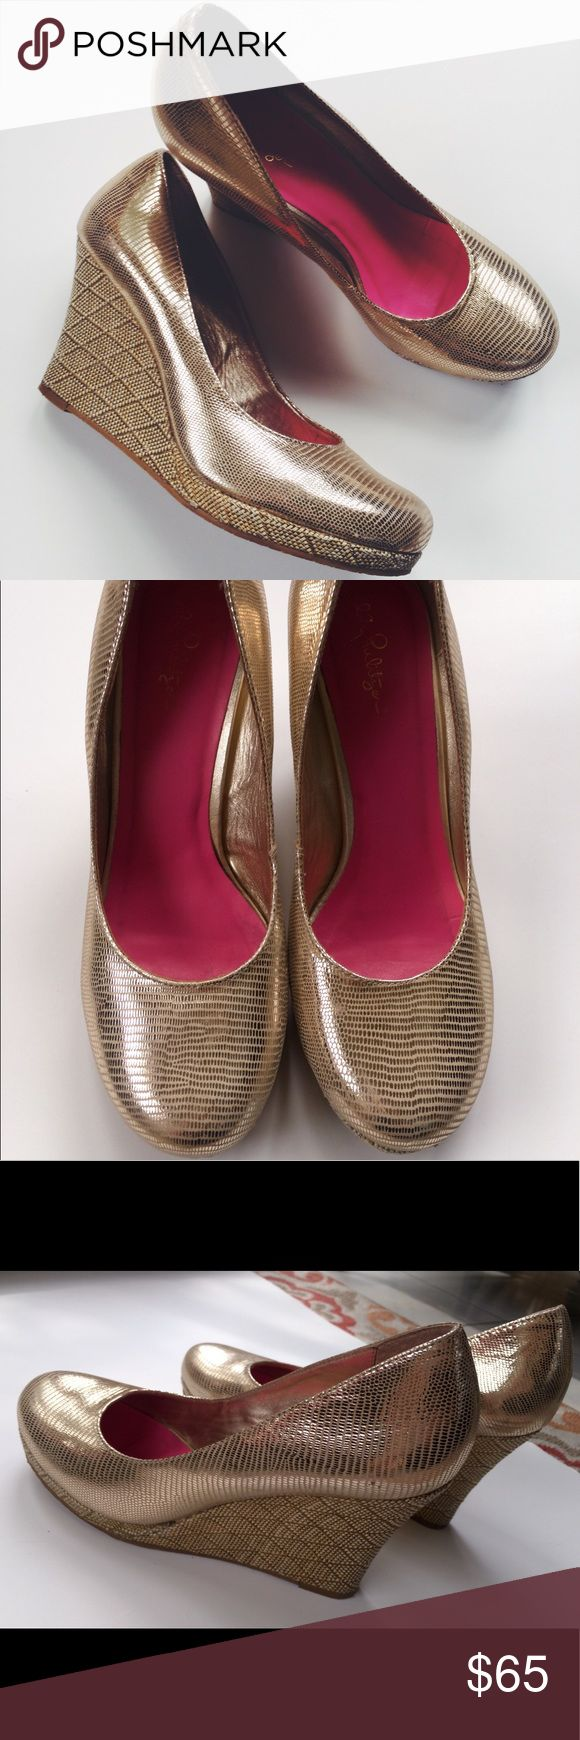 Lilly Pulitzer Resort Chic Gold Wedges The perfect shoe to spice up an outfit for going out or a special occasion. Lilly Pulitzer woven wedge heel with gold, metallic fabric. Almost like new condition with just a little sign of wear on heel. Heel is 4 inches high. Fast shipping 💕 Lilly Pulitzer Shoes Wedges